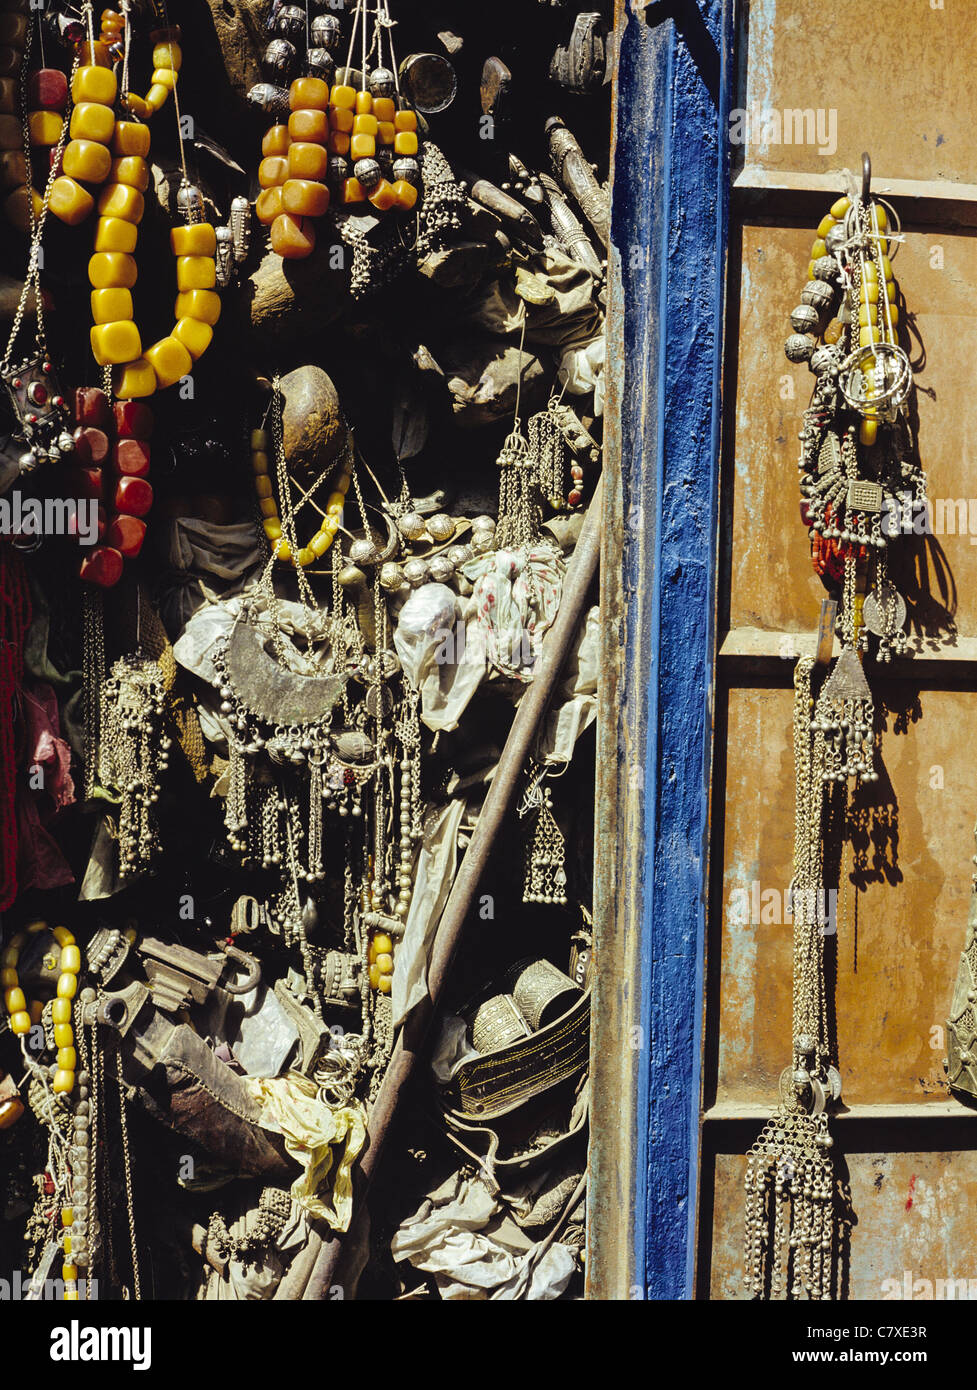 Jewelry display with necklaces made of silver and amber in the Suq-al-Milh marketplace in Sana'a, Yemen - Stock Image